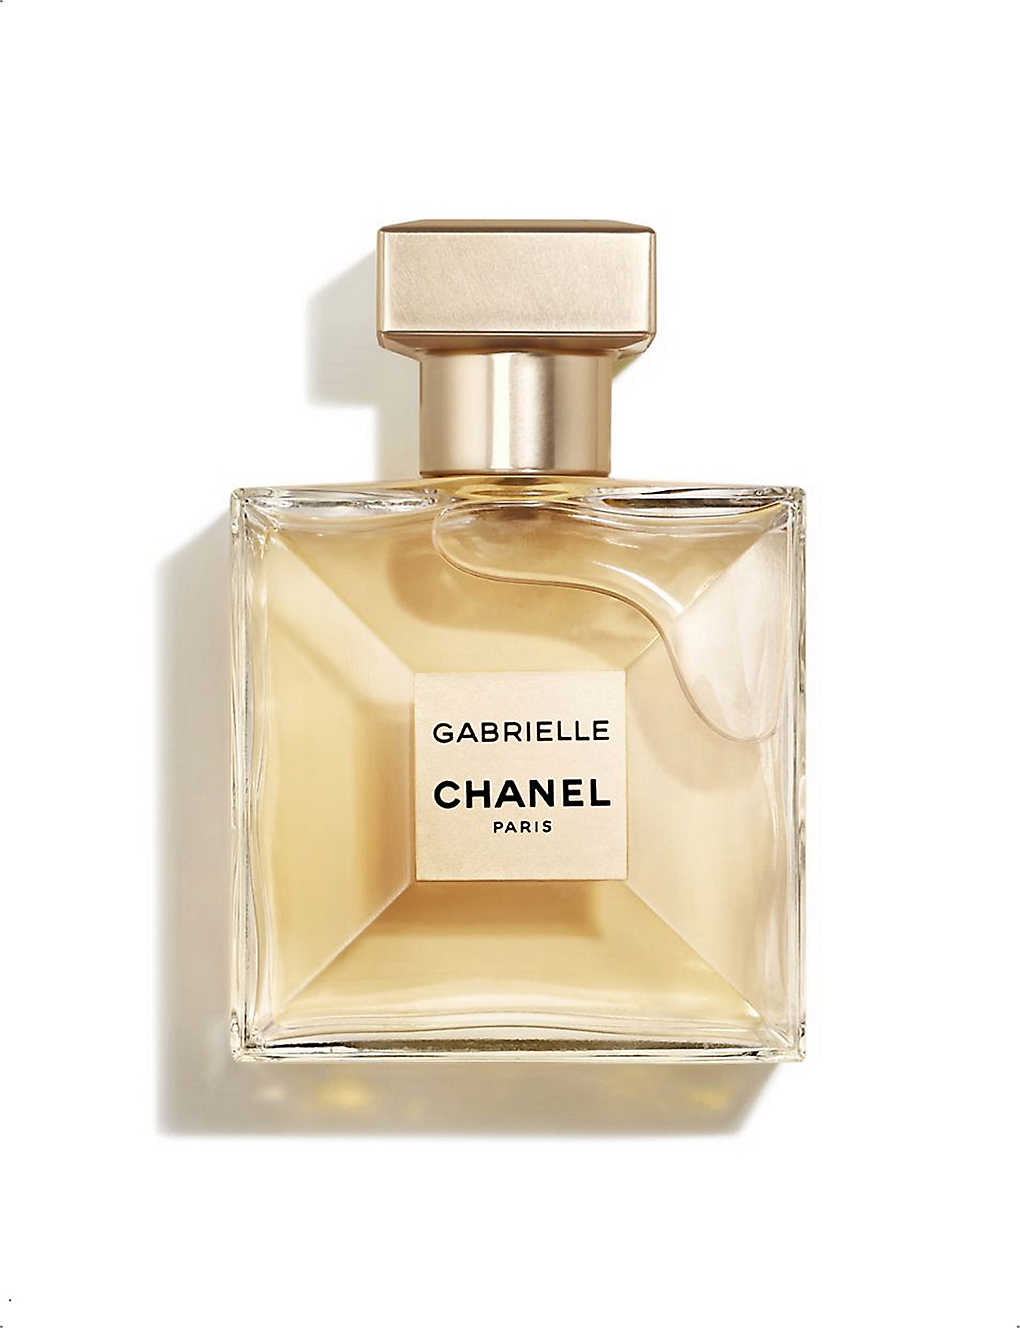 32d311981cd147 CHANEL - GABRIELLE CHANEL Eau De Parfum Spray | Selfridges.com